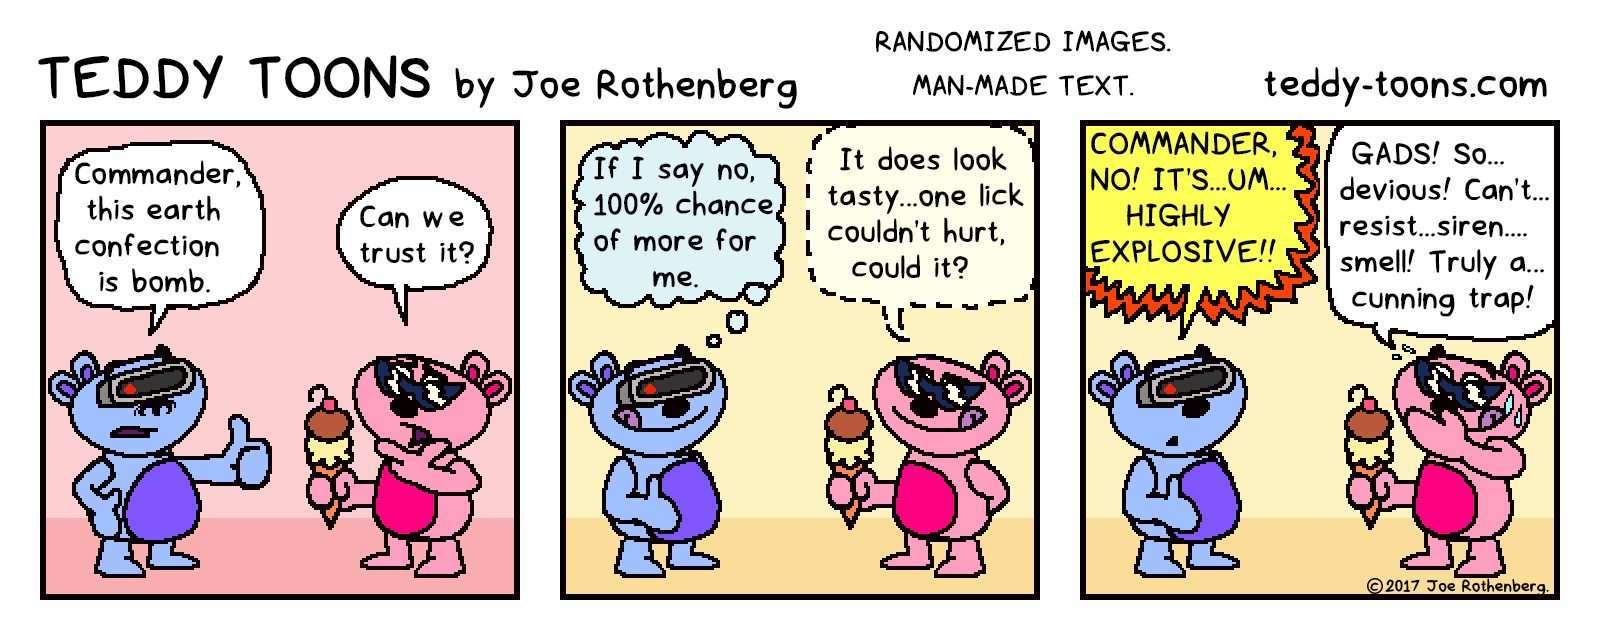 04-05-17.png